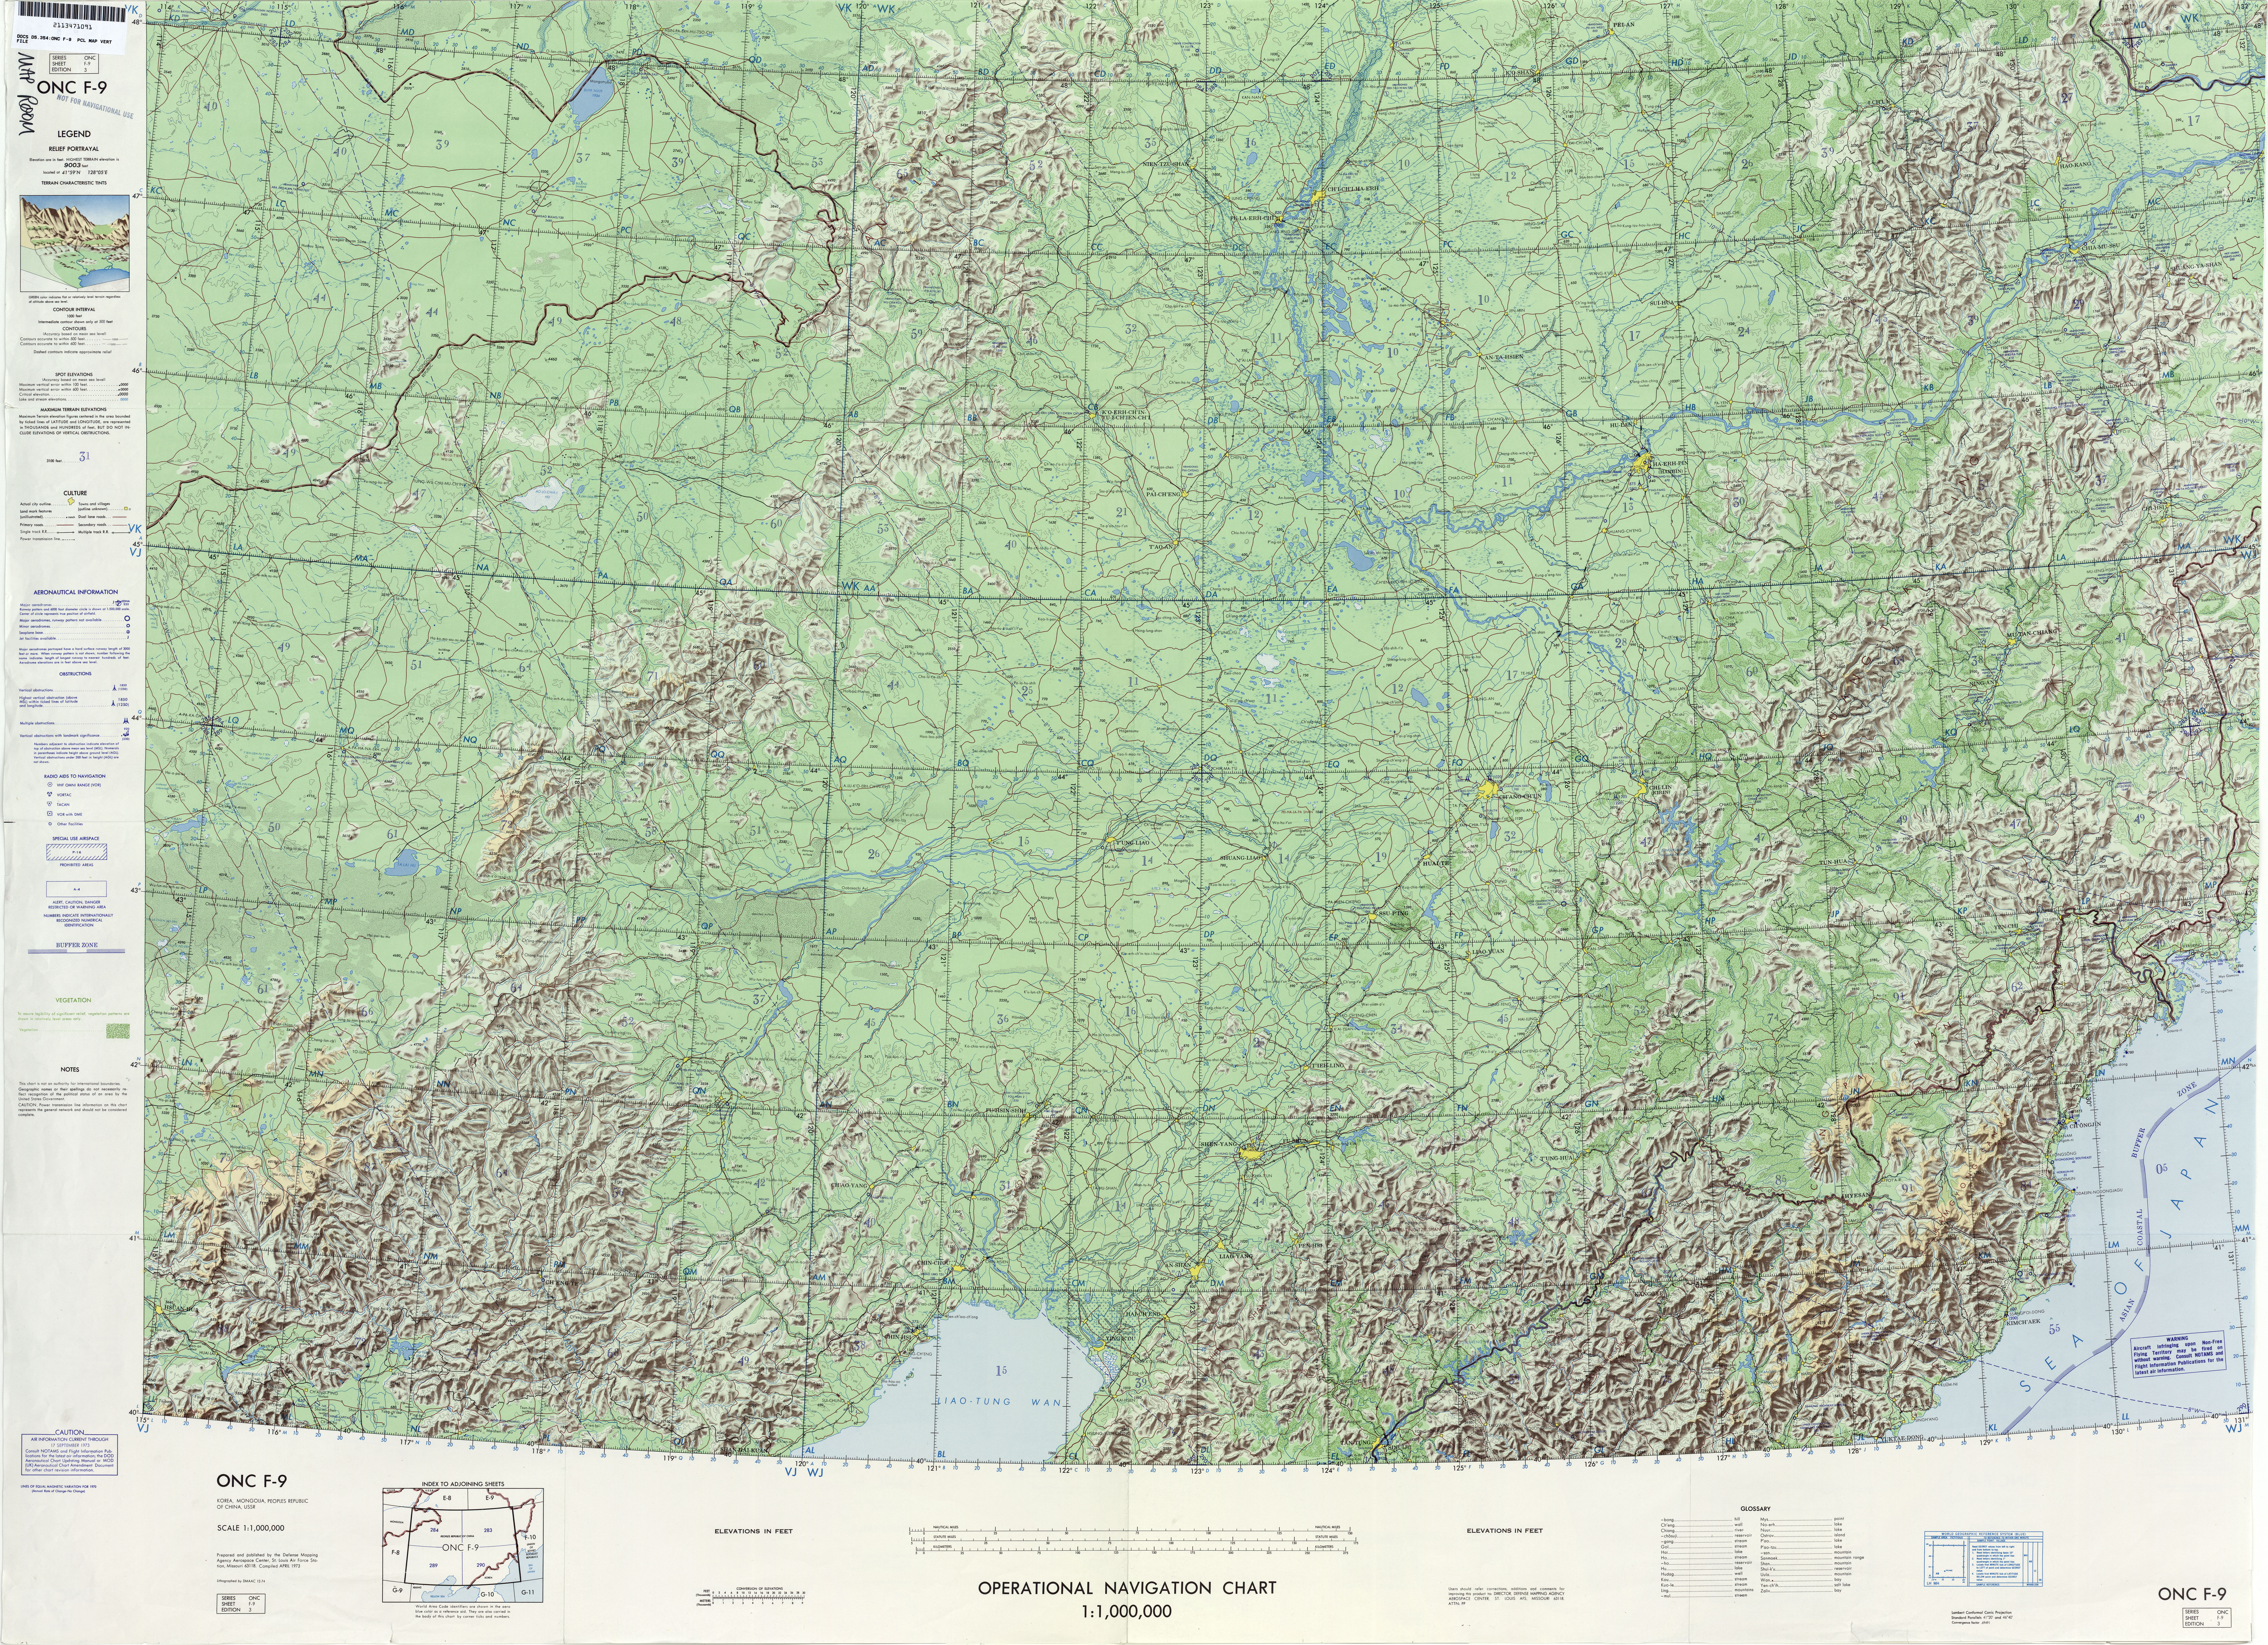 Operational navigation charts perry castaeda map collection ut mongolia peoples republic of china ussr not for navigational use us defense mapping agency aerospace center compiled 1973 196mb gumiabroncs Image collections